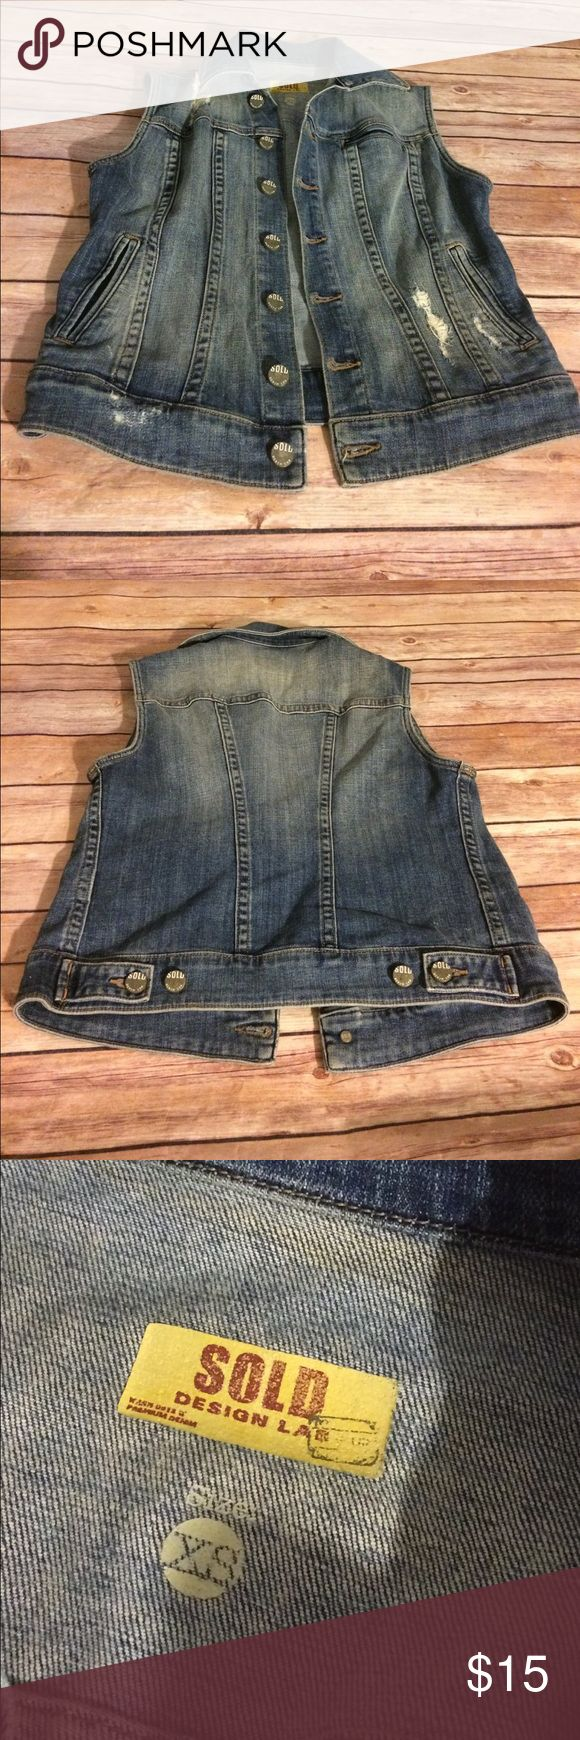 Sold Design Lab Hollister Distressed Denim Vest Excellent condition. Hollister Sleeveless jean vest. 👜Submit a bundle of 3 or more items for 20% off!  Any item or bundle over $20?  Take $5 off the price listed. It's like getting almost free shipping!  If those options don't work for your needs, feel free to just submit an offer! 👜.       🚫Smoke free, pet free home. No trades. 🚫 SOLD Design Lab Jackets & Coats Vests